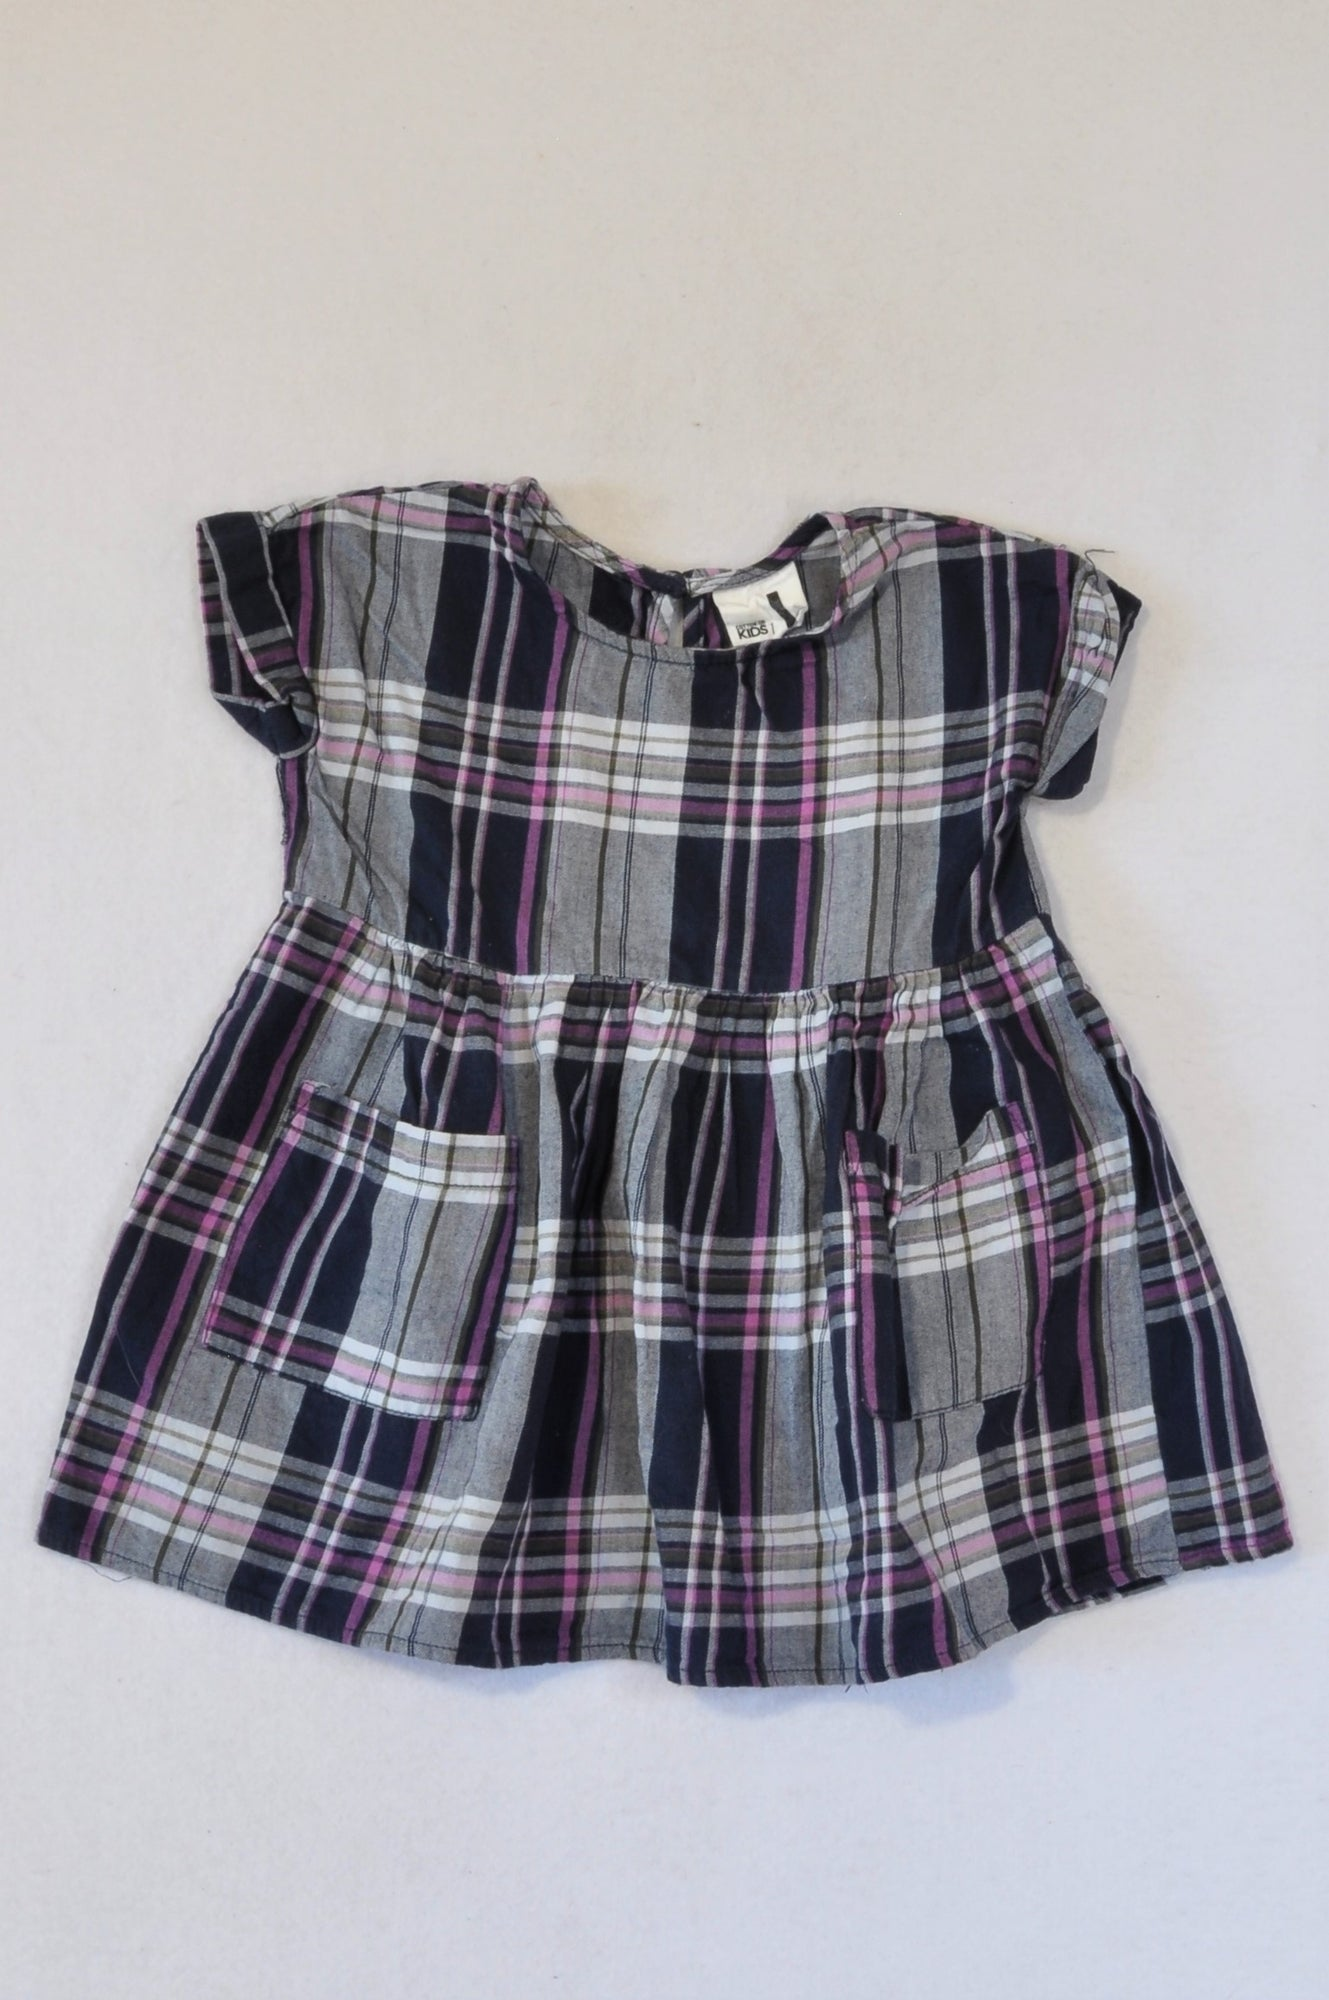 Cotton On Kids Navy & Purple Plaid Flannel Babydoll Dress Girls 12-18 months